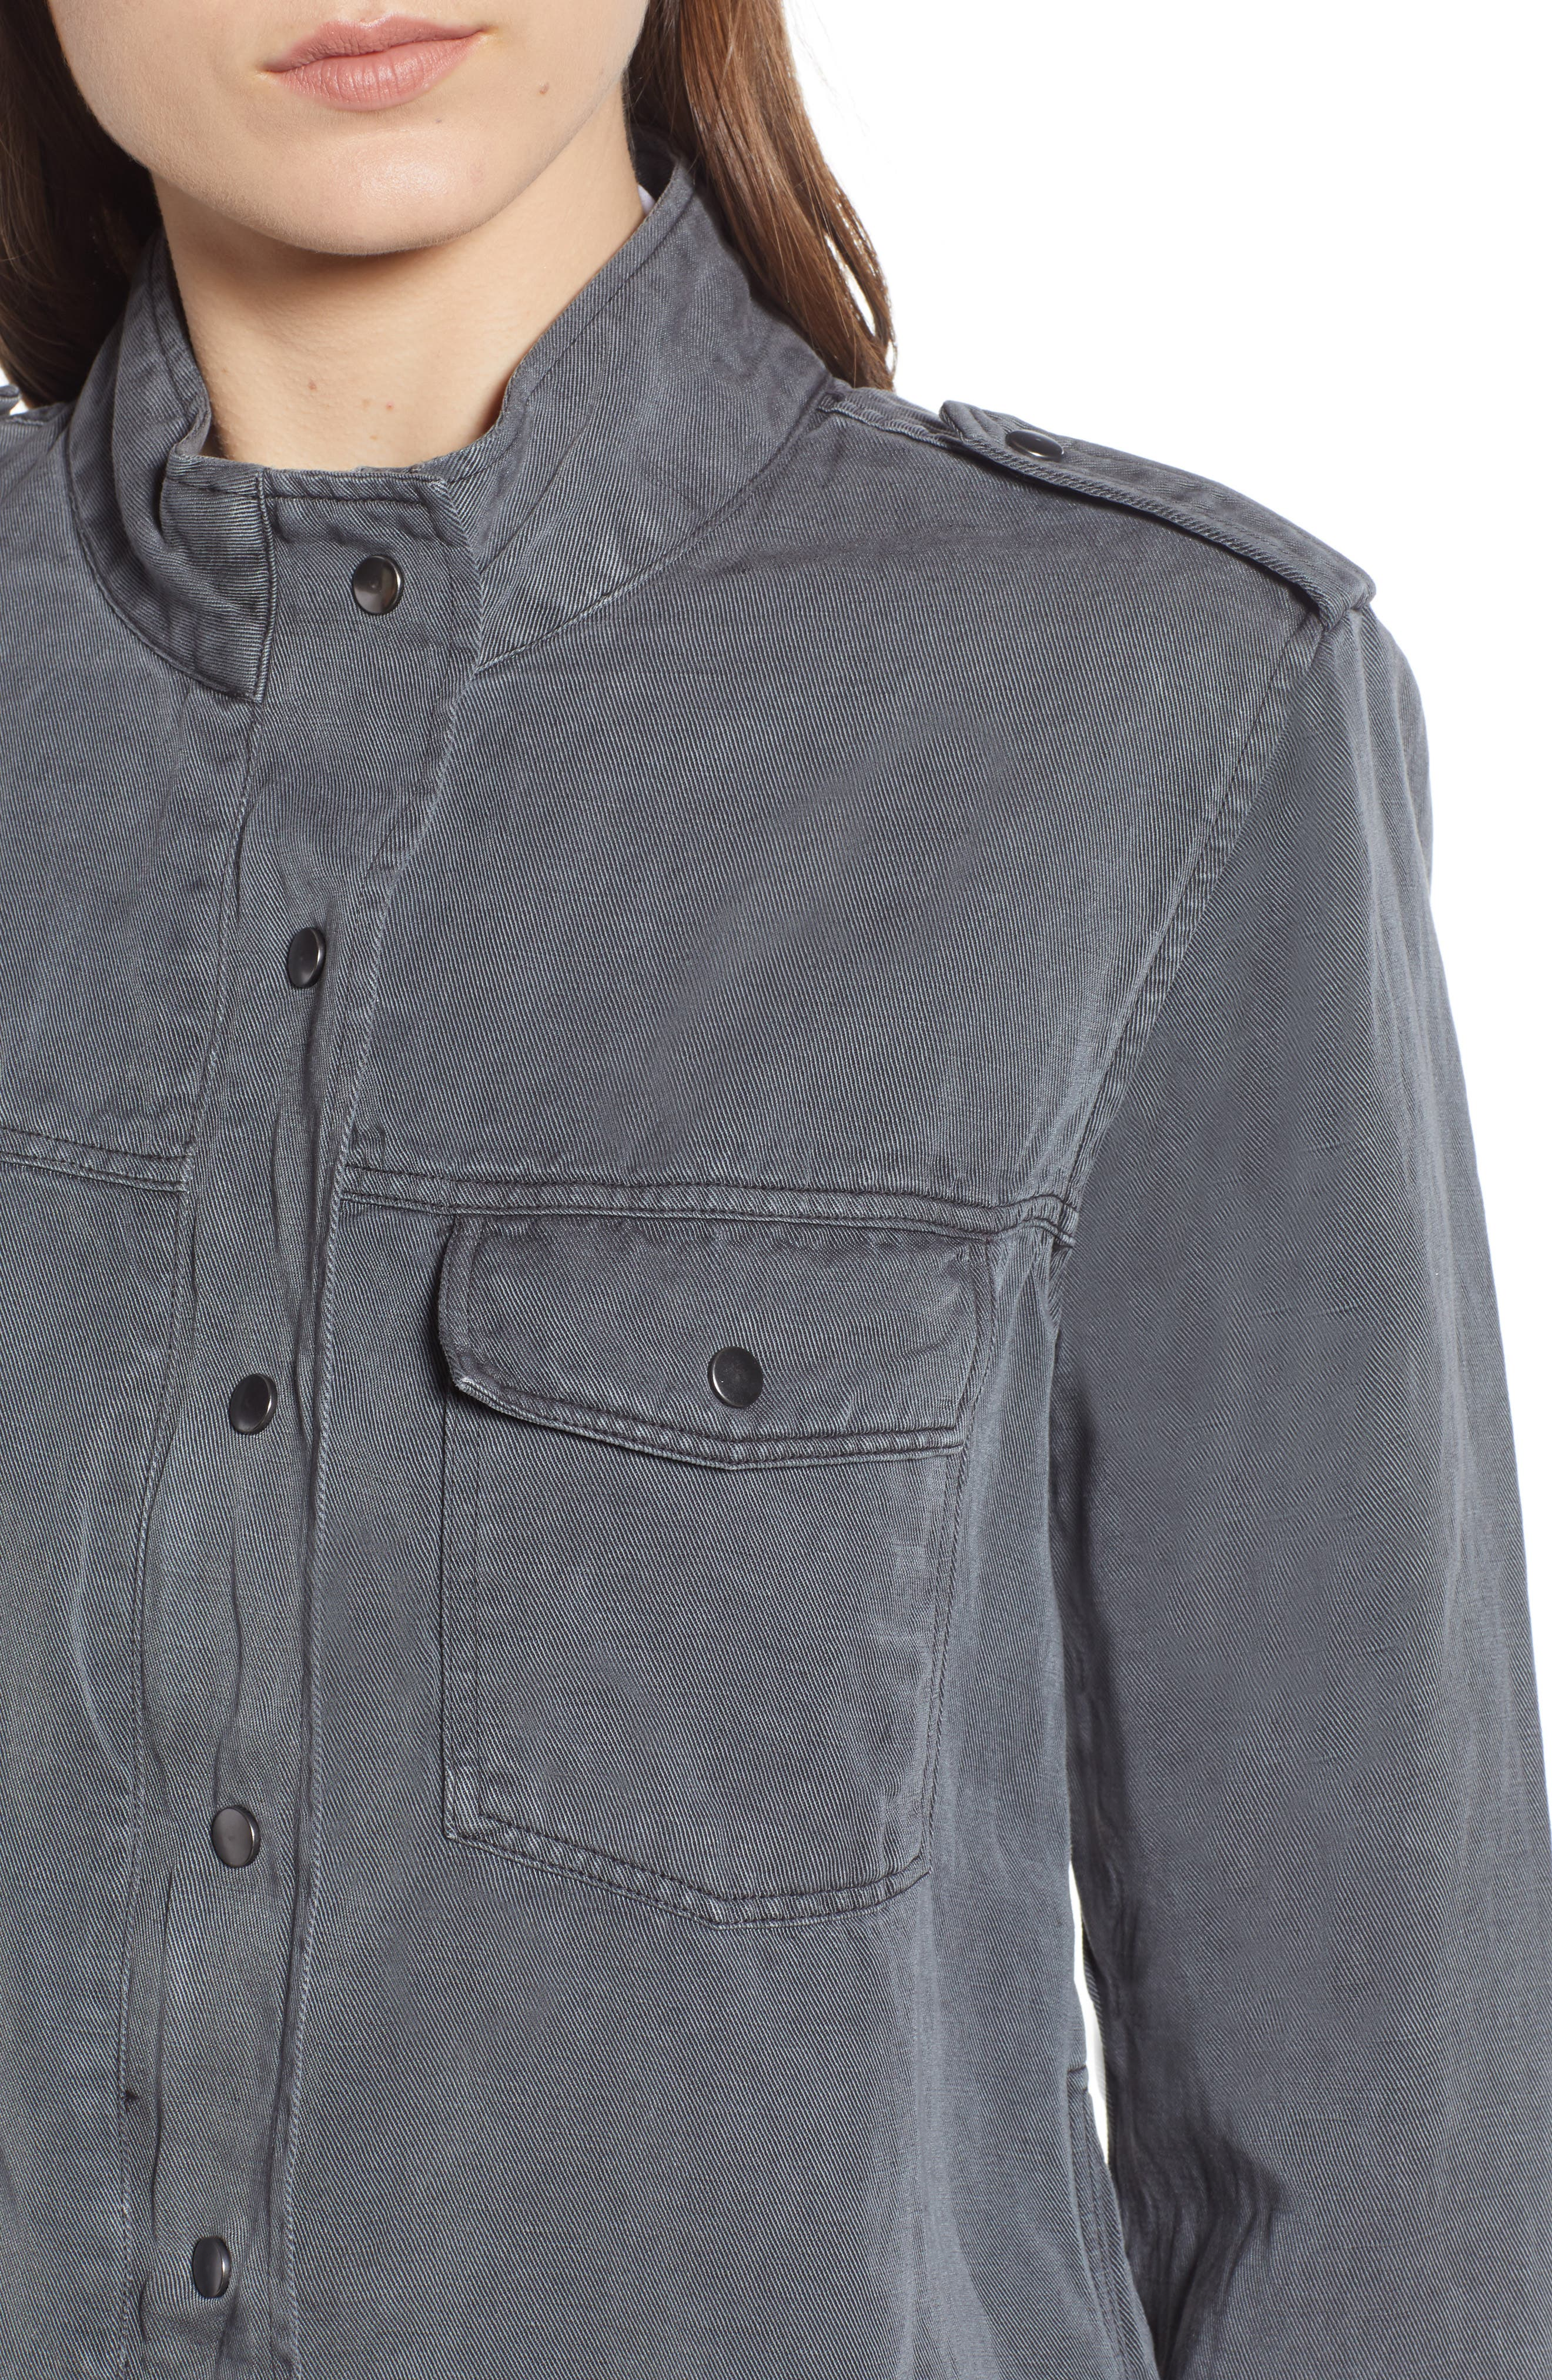 Collins Military Jacket,                             Alternate thumbnail 4, color,                             LIGHT CHARCOAL